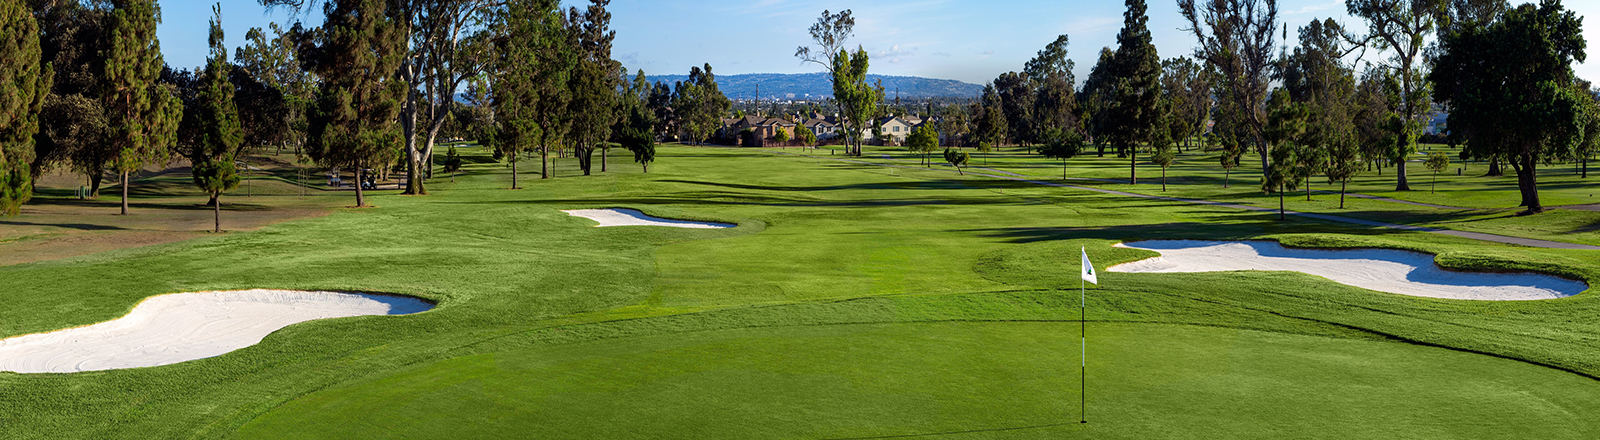 Chester Washington Golf Course Header